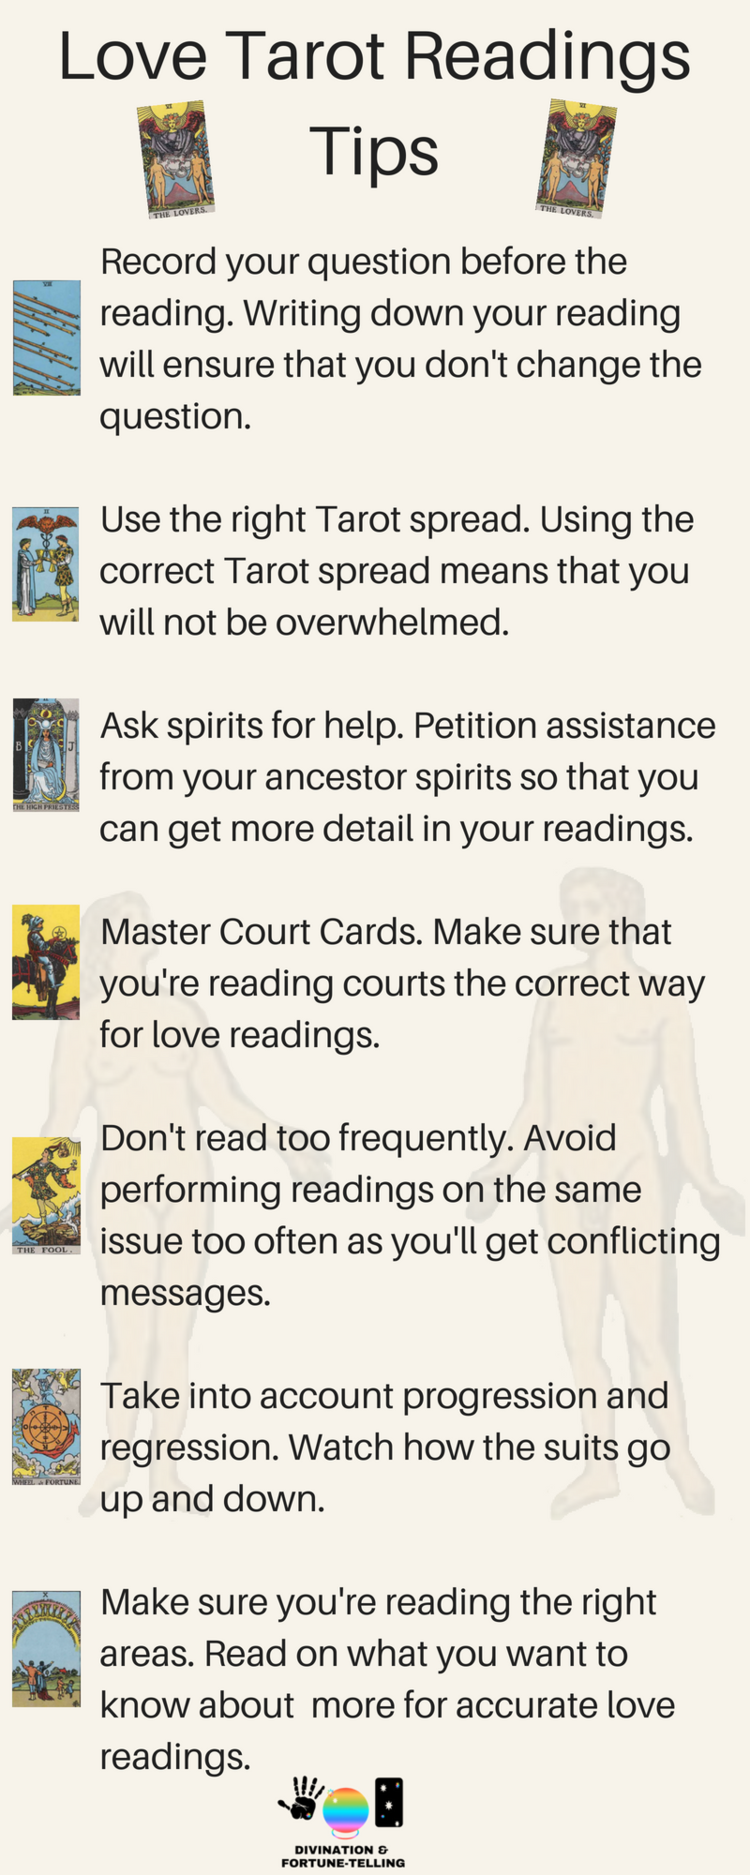 Tarot reading tips for performing love card readings! Here, you will find tips by divination and fortune telling for spreads on relationships, partnerships, self and more! Deck and art is The Rider Waite Tarot. Advice for beginners just learning the meanings or a pro!